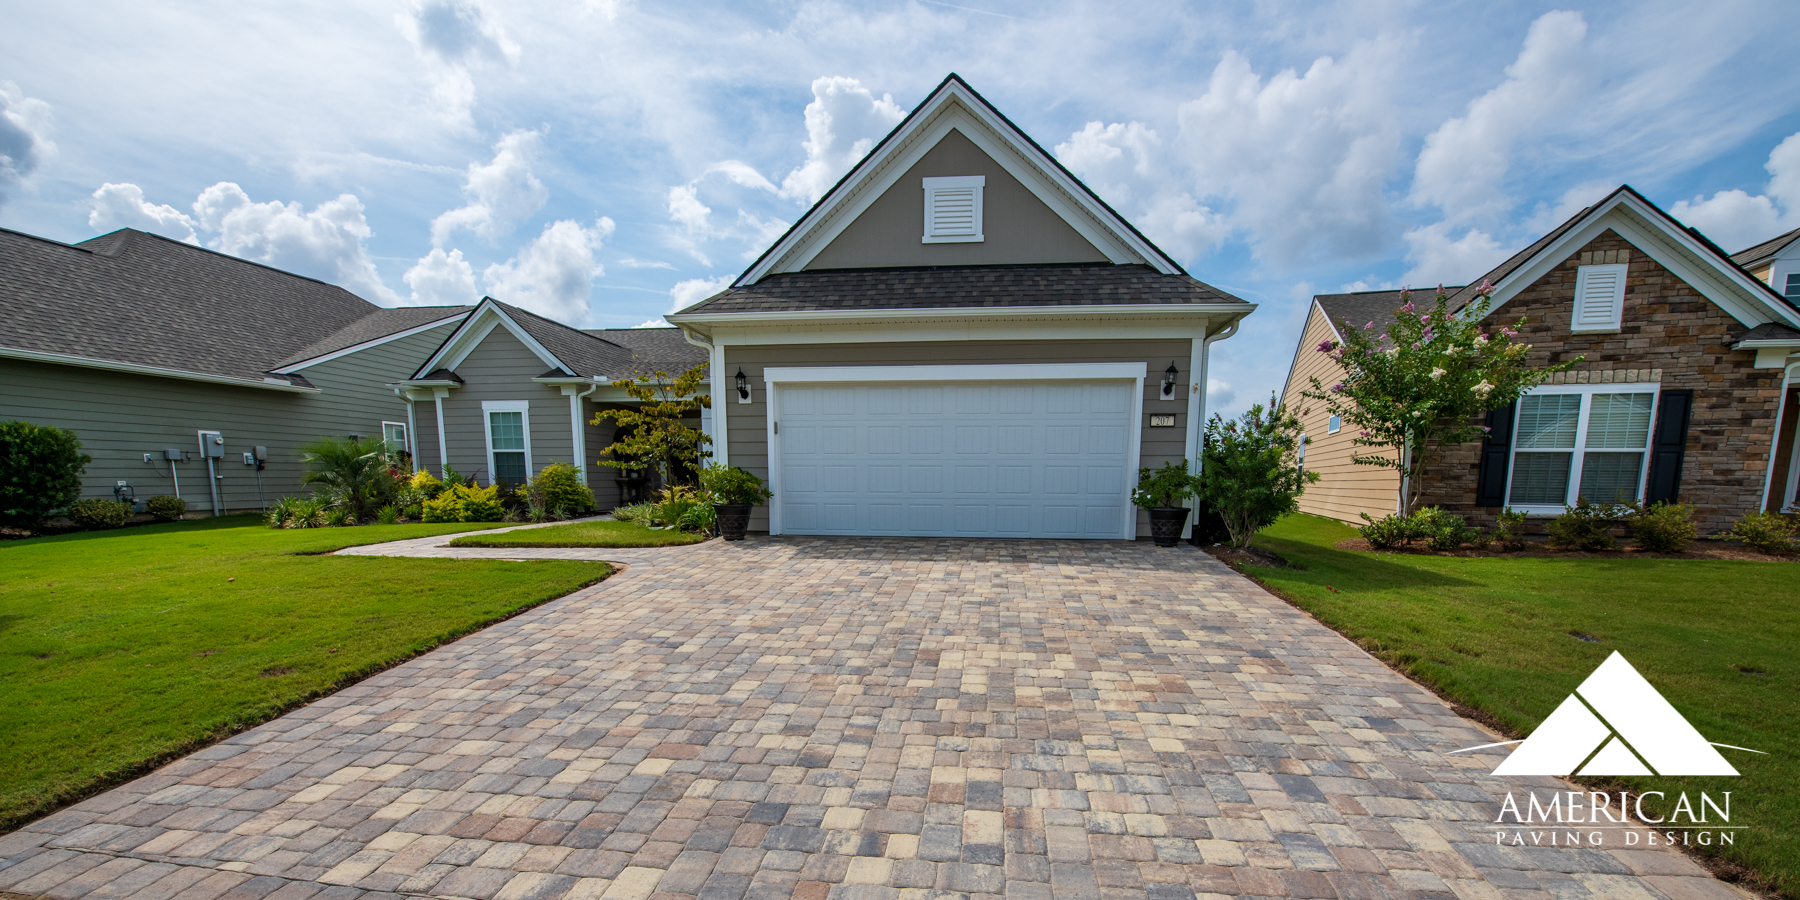 We DO ALL THINGS PAVERS! - Hilton Head paver company, American Paving Design is your LOCAL leader for all things pavers. We specialize in; paver driveways, pool decks, patios and more!